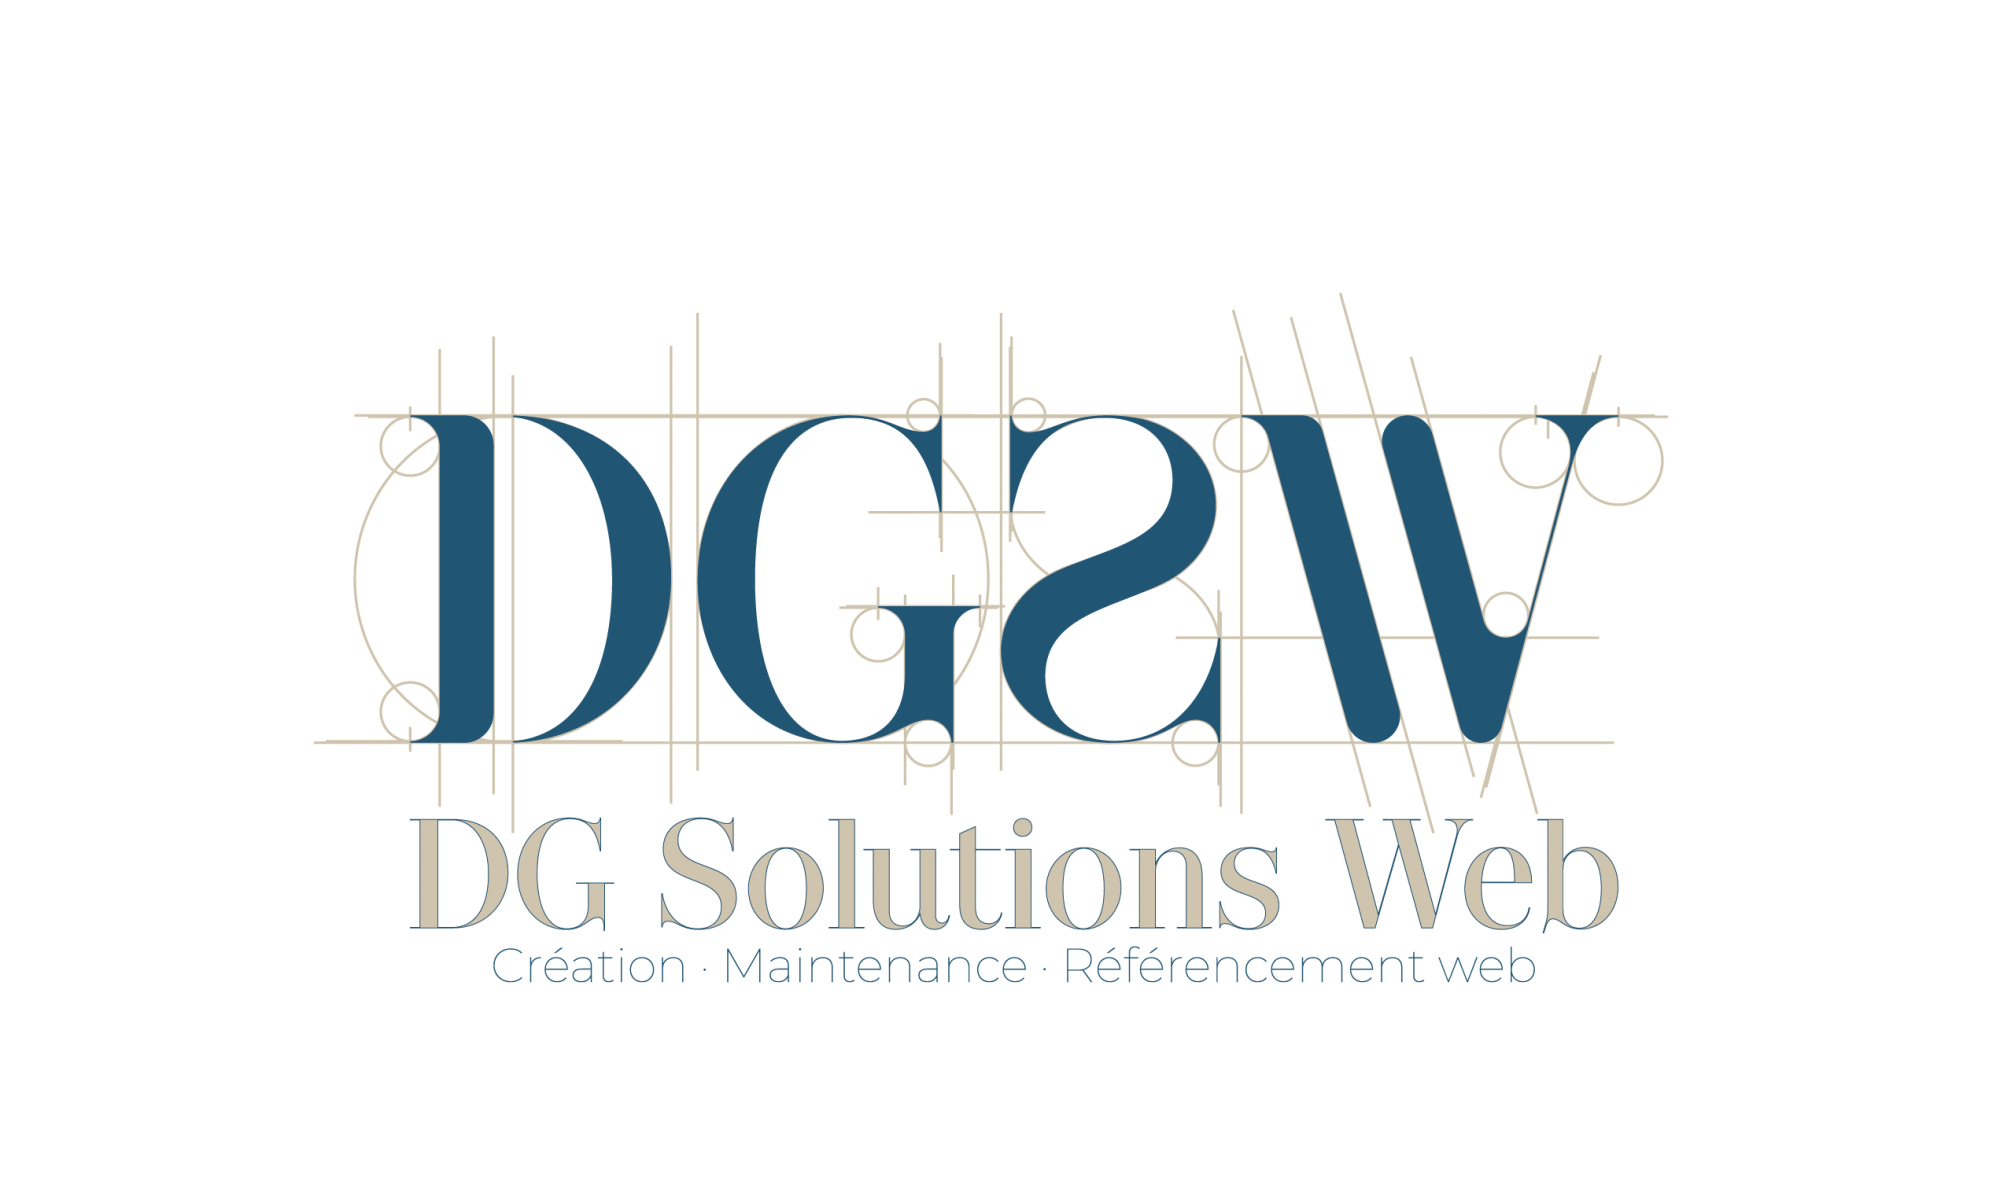 DG Solutions Web – DGSW